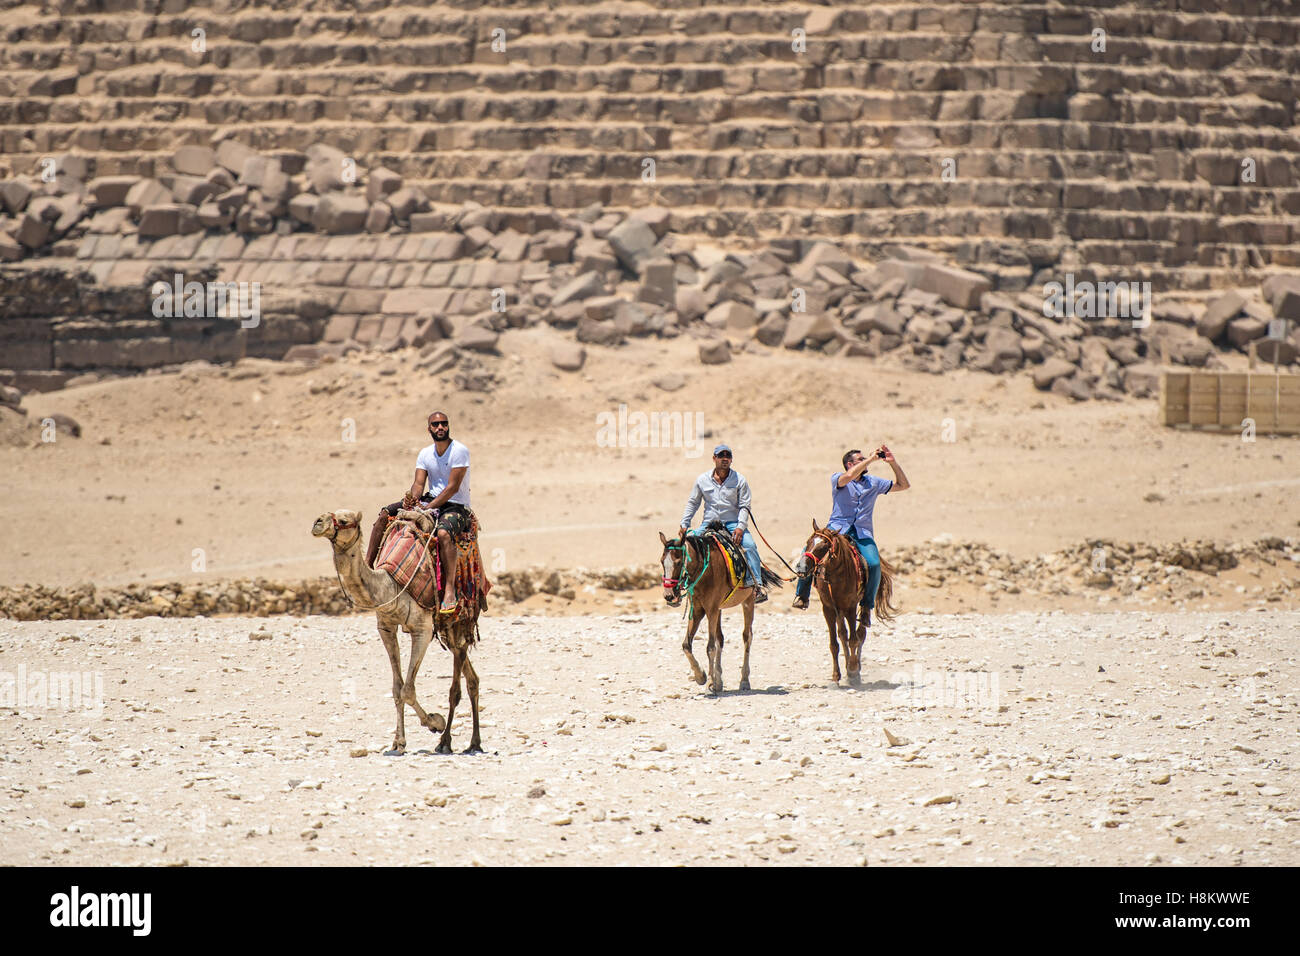 Cairo, Egypt Camel drivers on horseback and a tourist riding a camel walking through the desert with the Great Pyramids - Stock Image